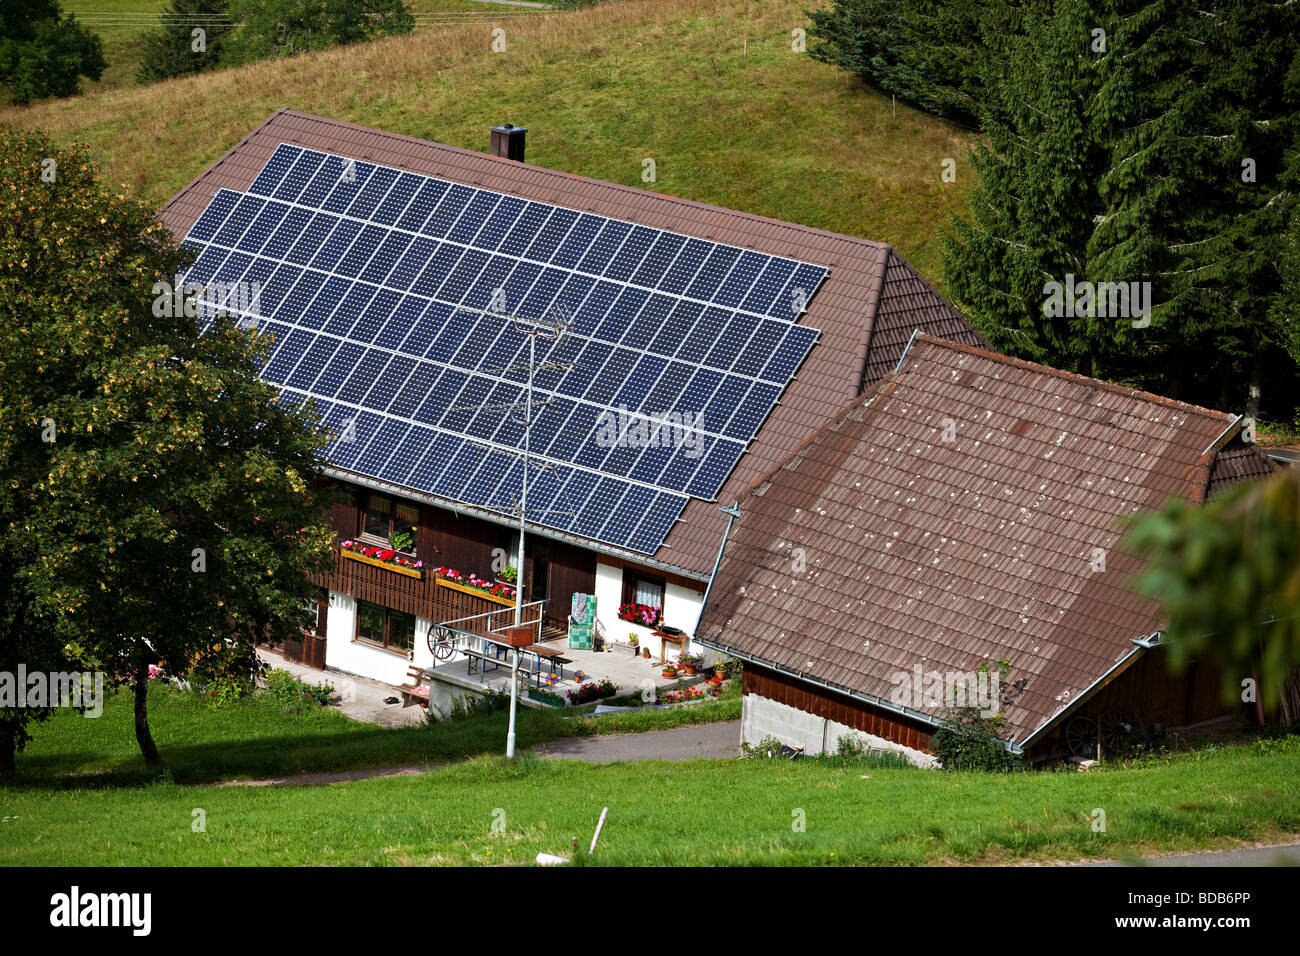 An eco house powered by solar panels in Schwarzwald, Germany, Europe. - Stock Image